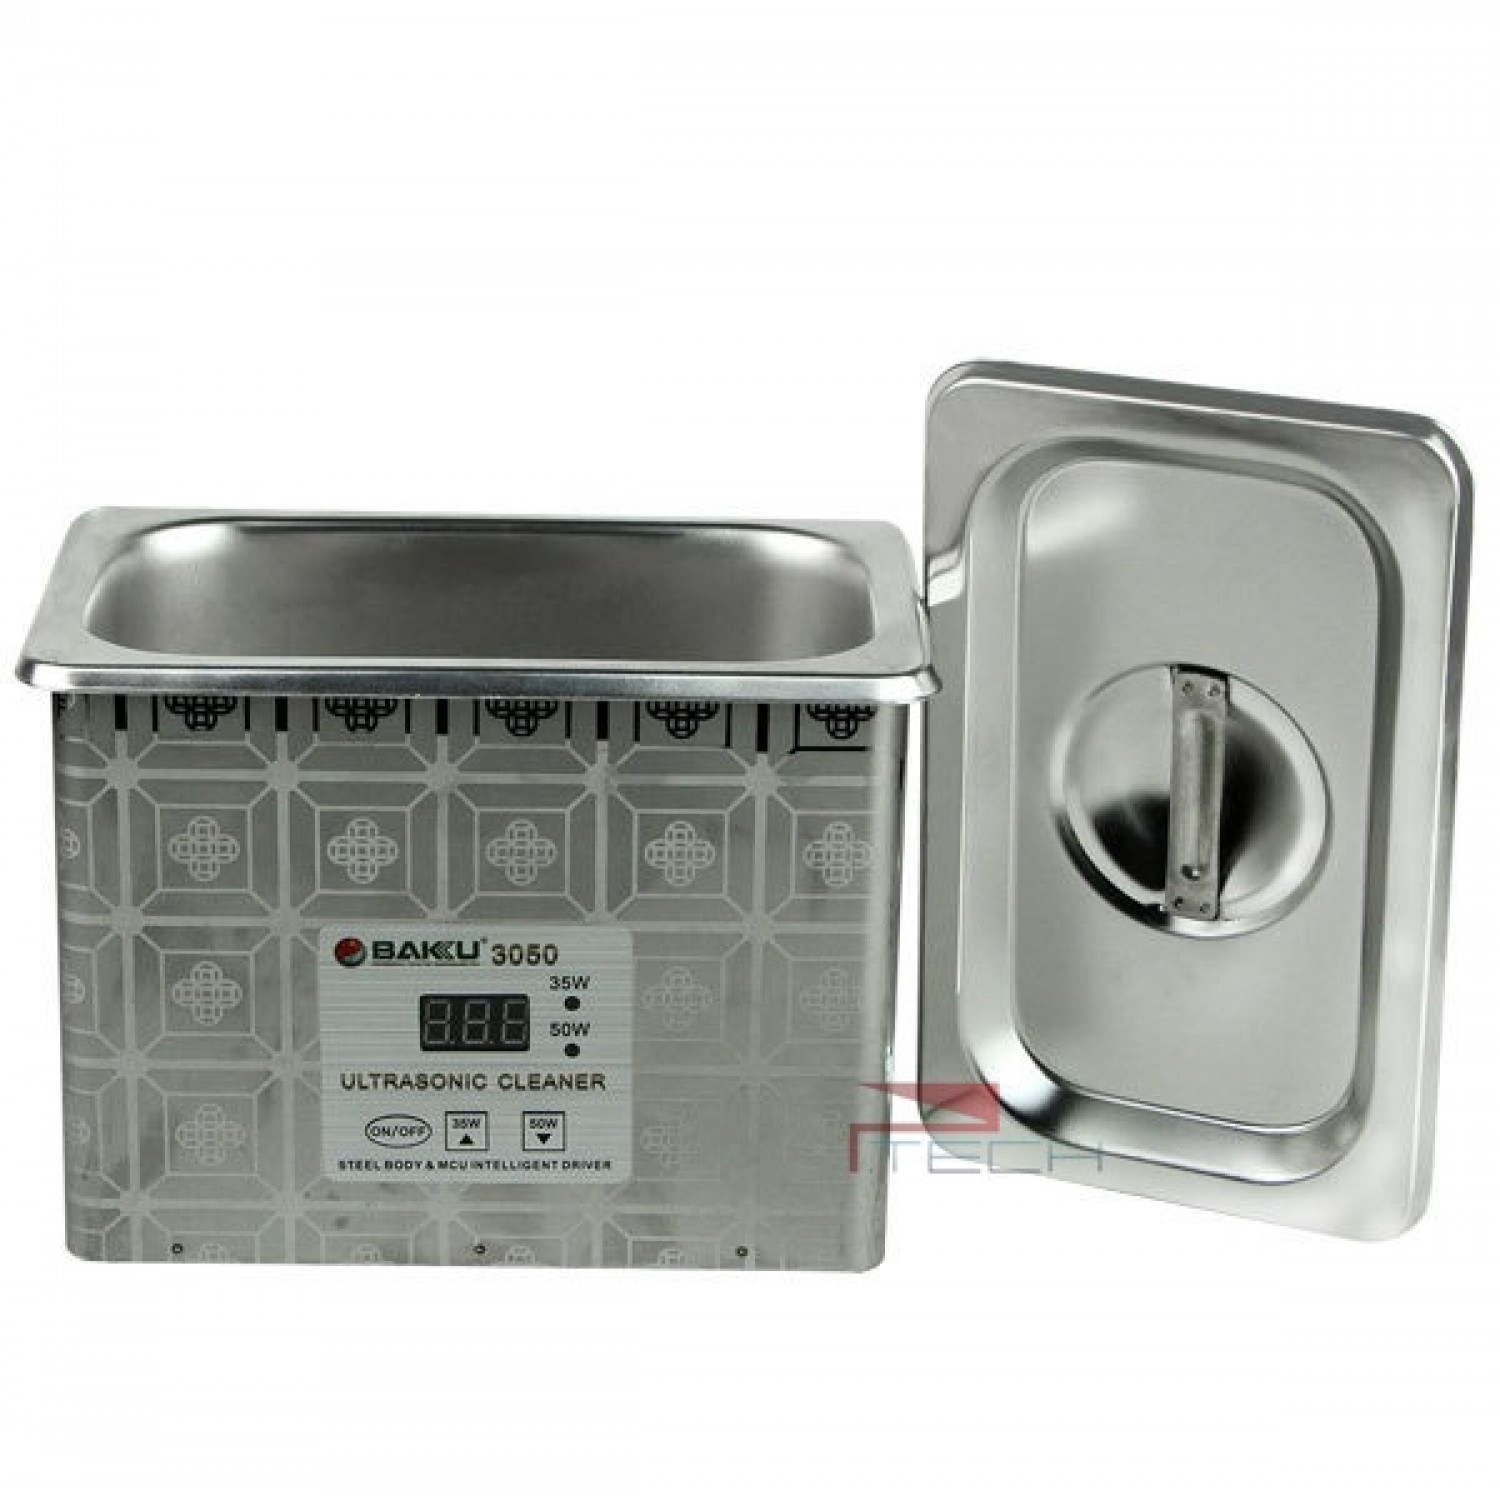 Stainless Steel Digital Ultrasonic Cleaner